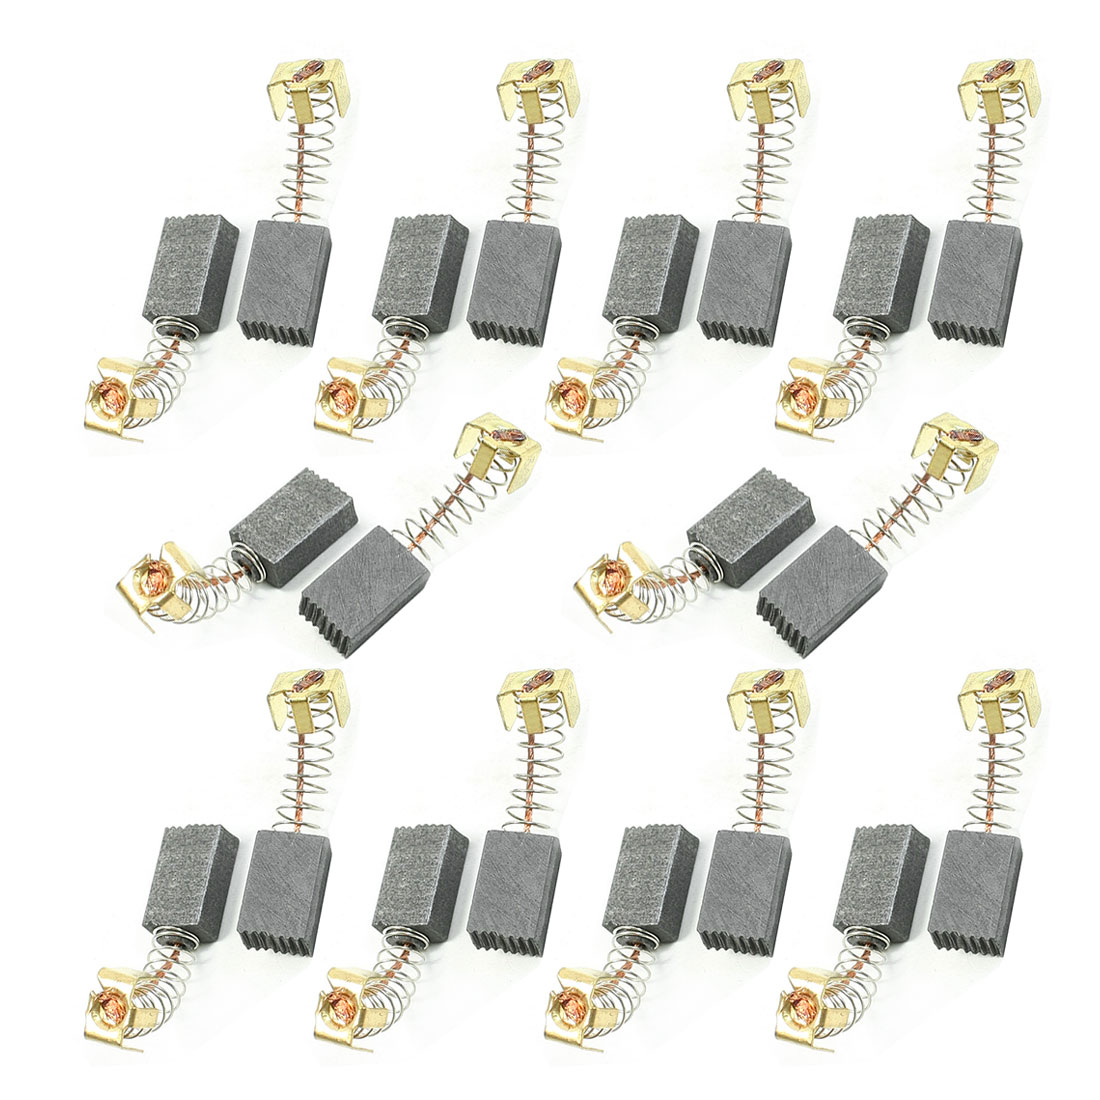 20Pcs 5 x 8 x 12 Motor Carbon Brushes CB-64 for Makita Power Tool